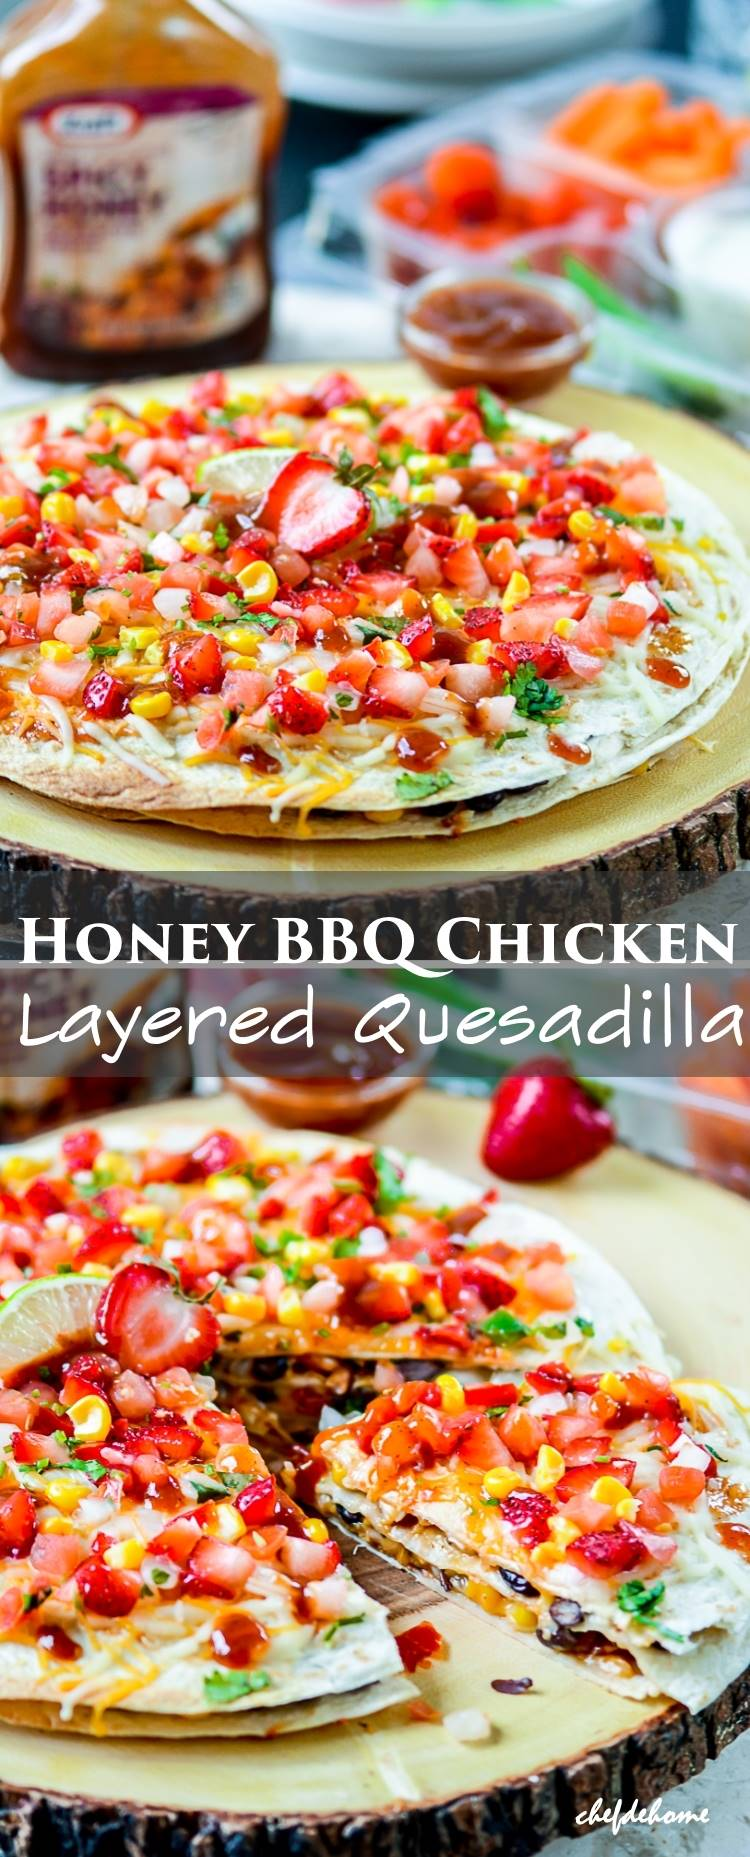 Three Layers of Tortilla with Honey BBQ Chicken and Beans for delicious Party Appetizer | chefdehome.com